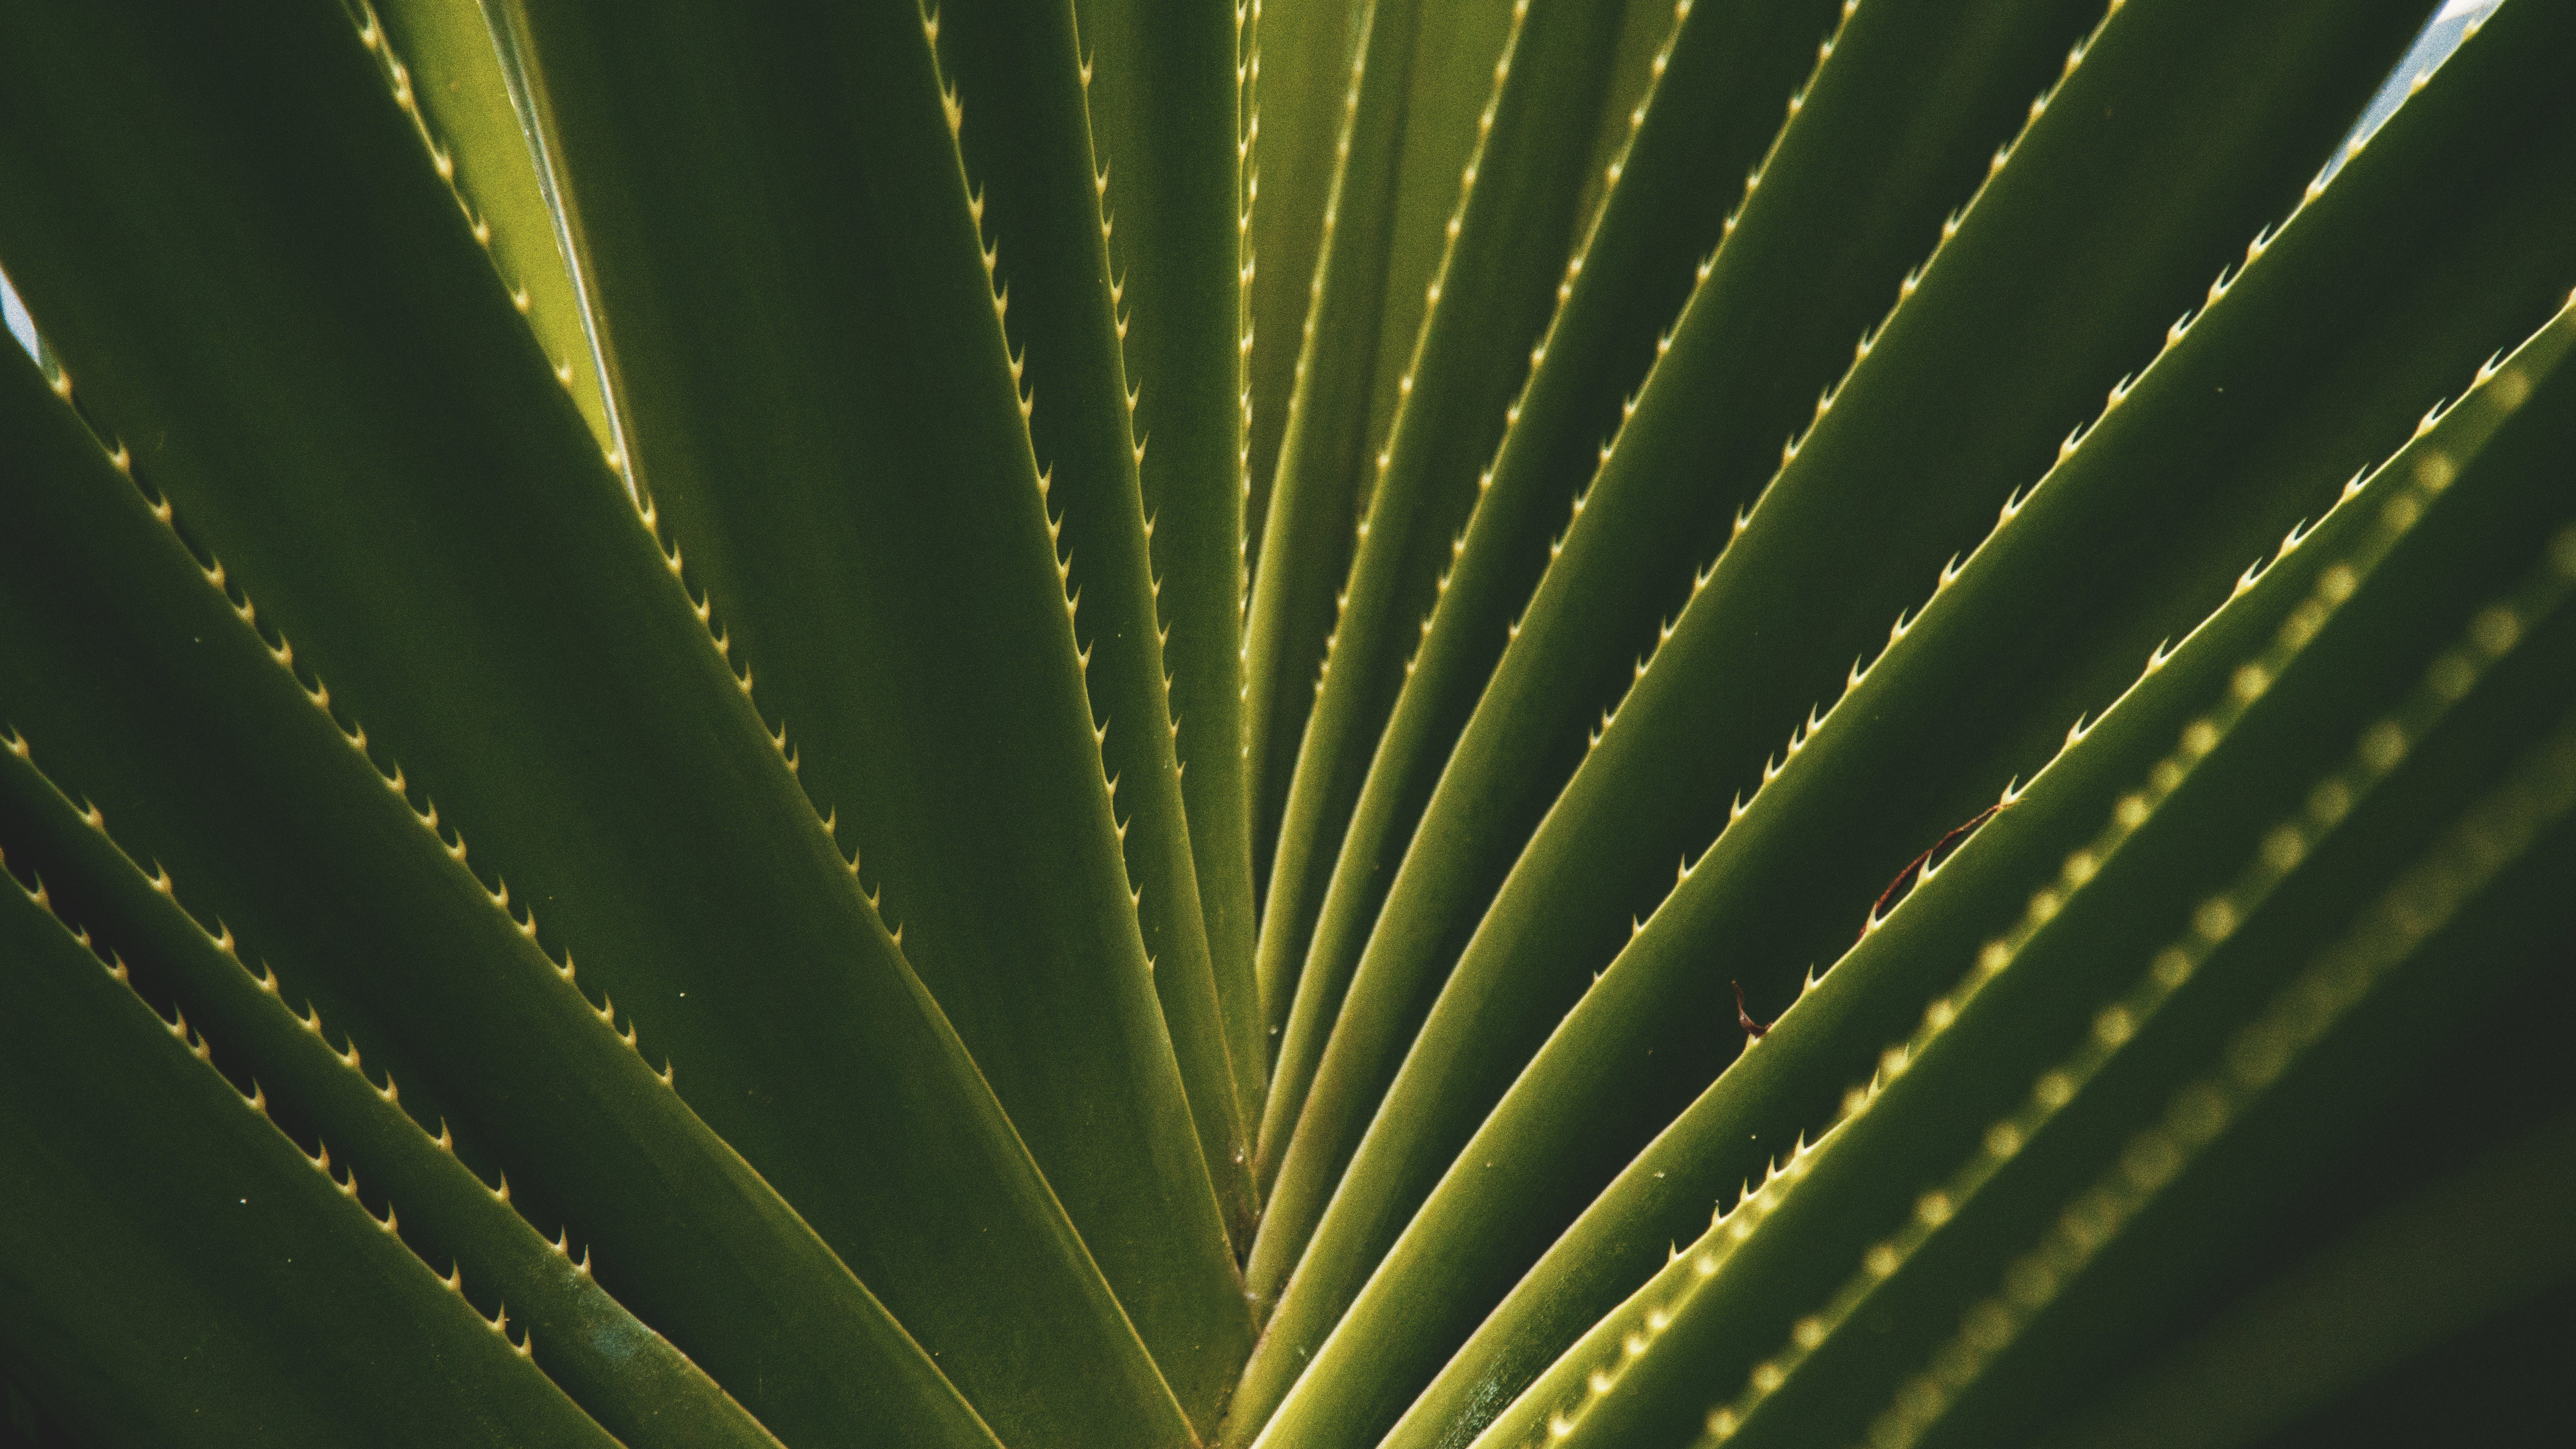 Macro Photography of Leaves